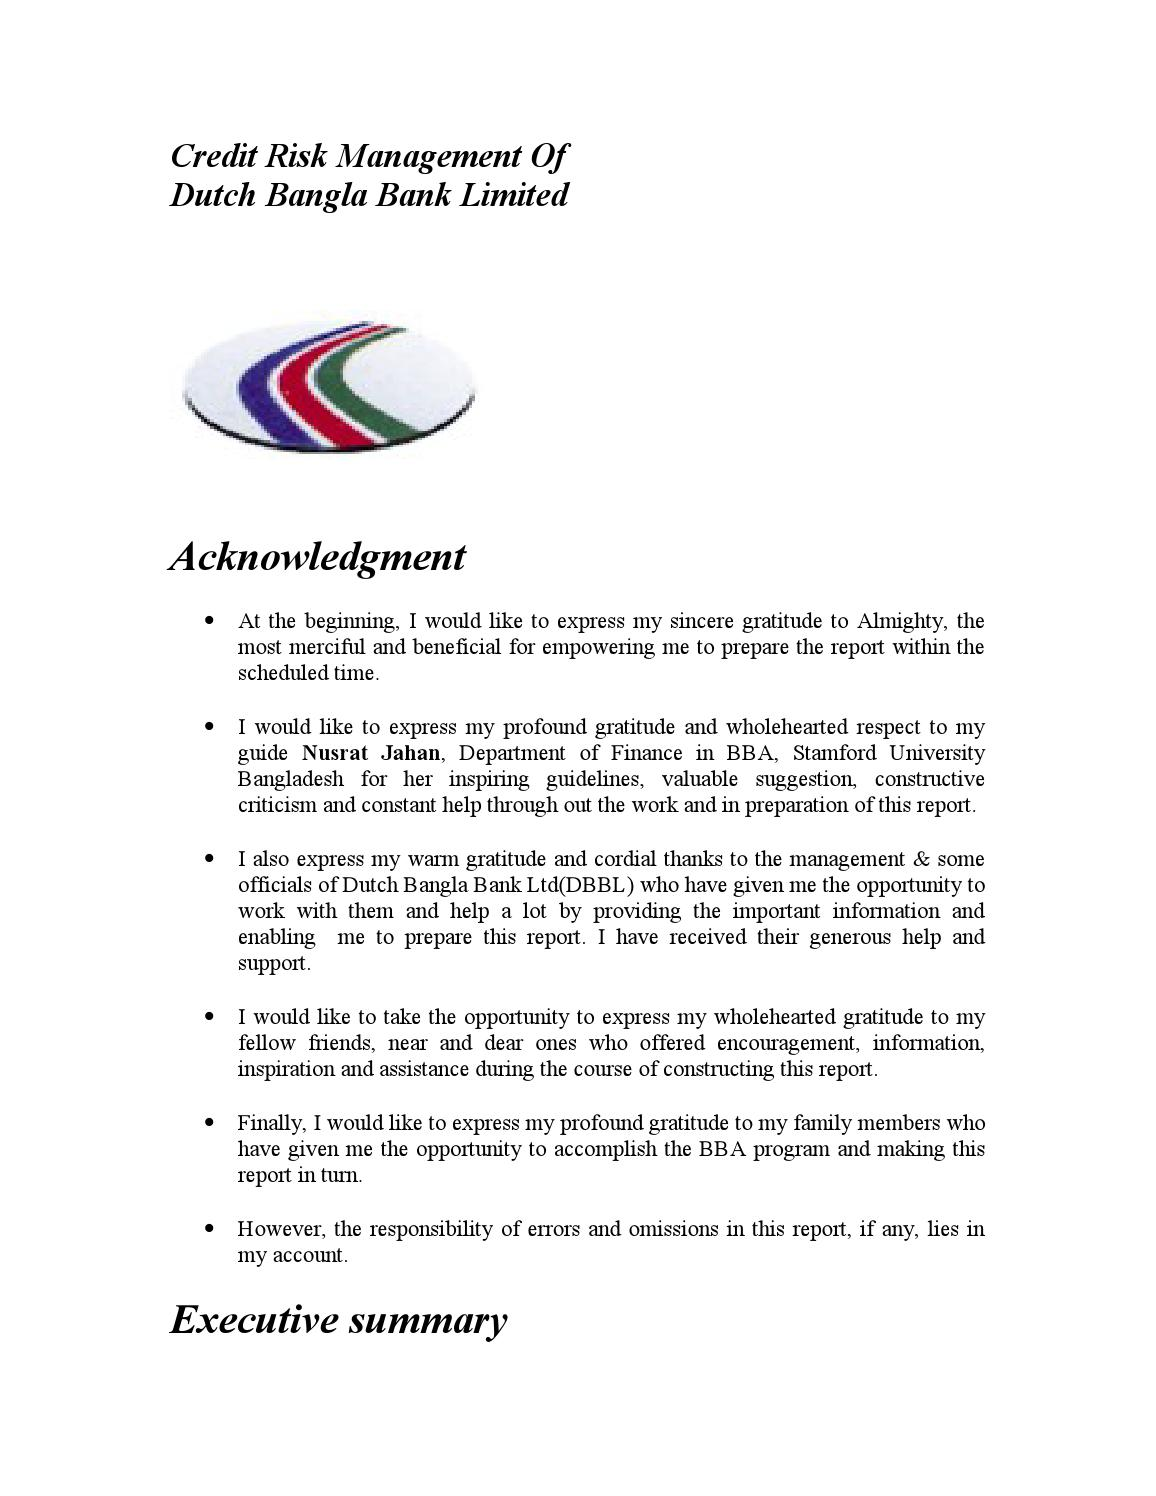 Credit Risk Management Of Dutch Bangla Bank Limited By Lawjuris Issuu